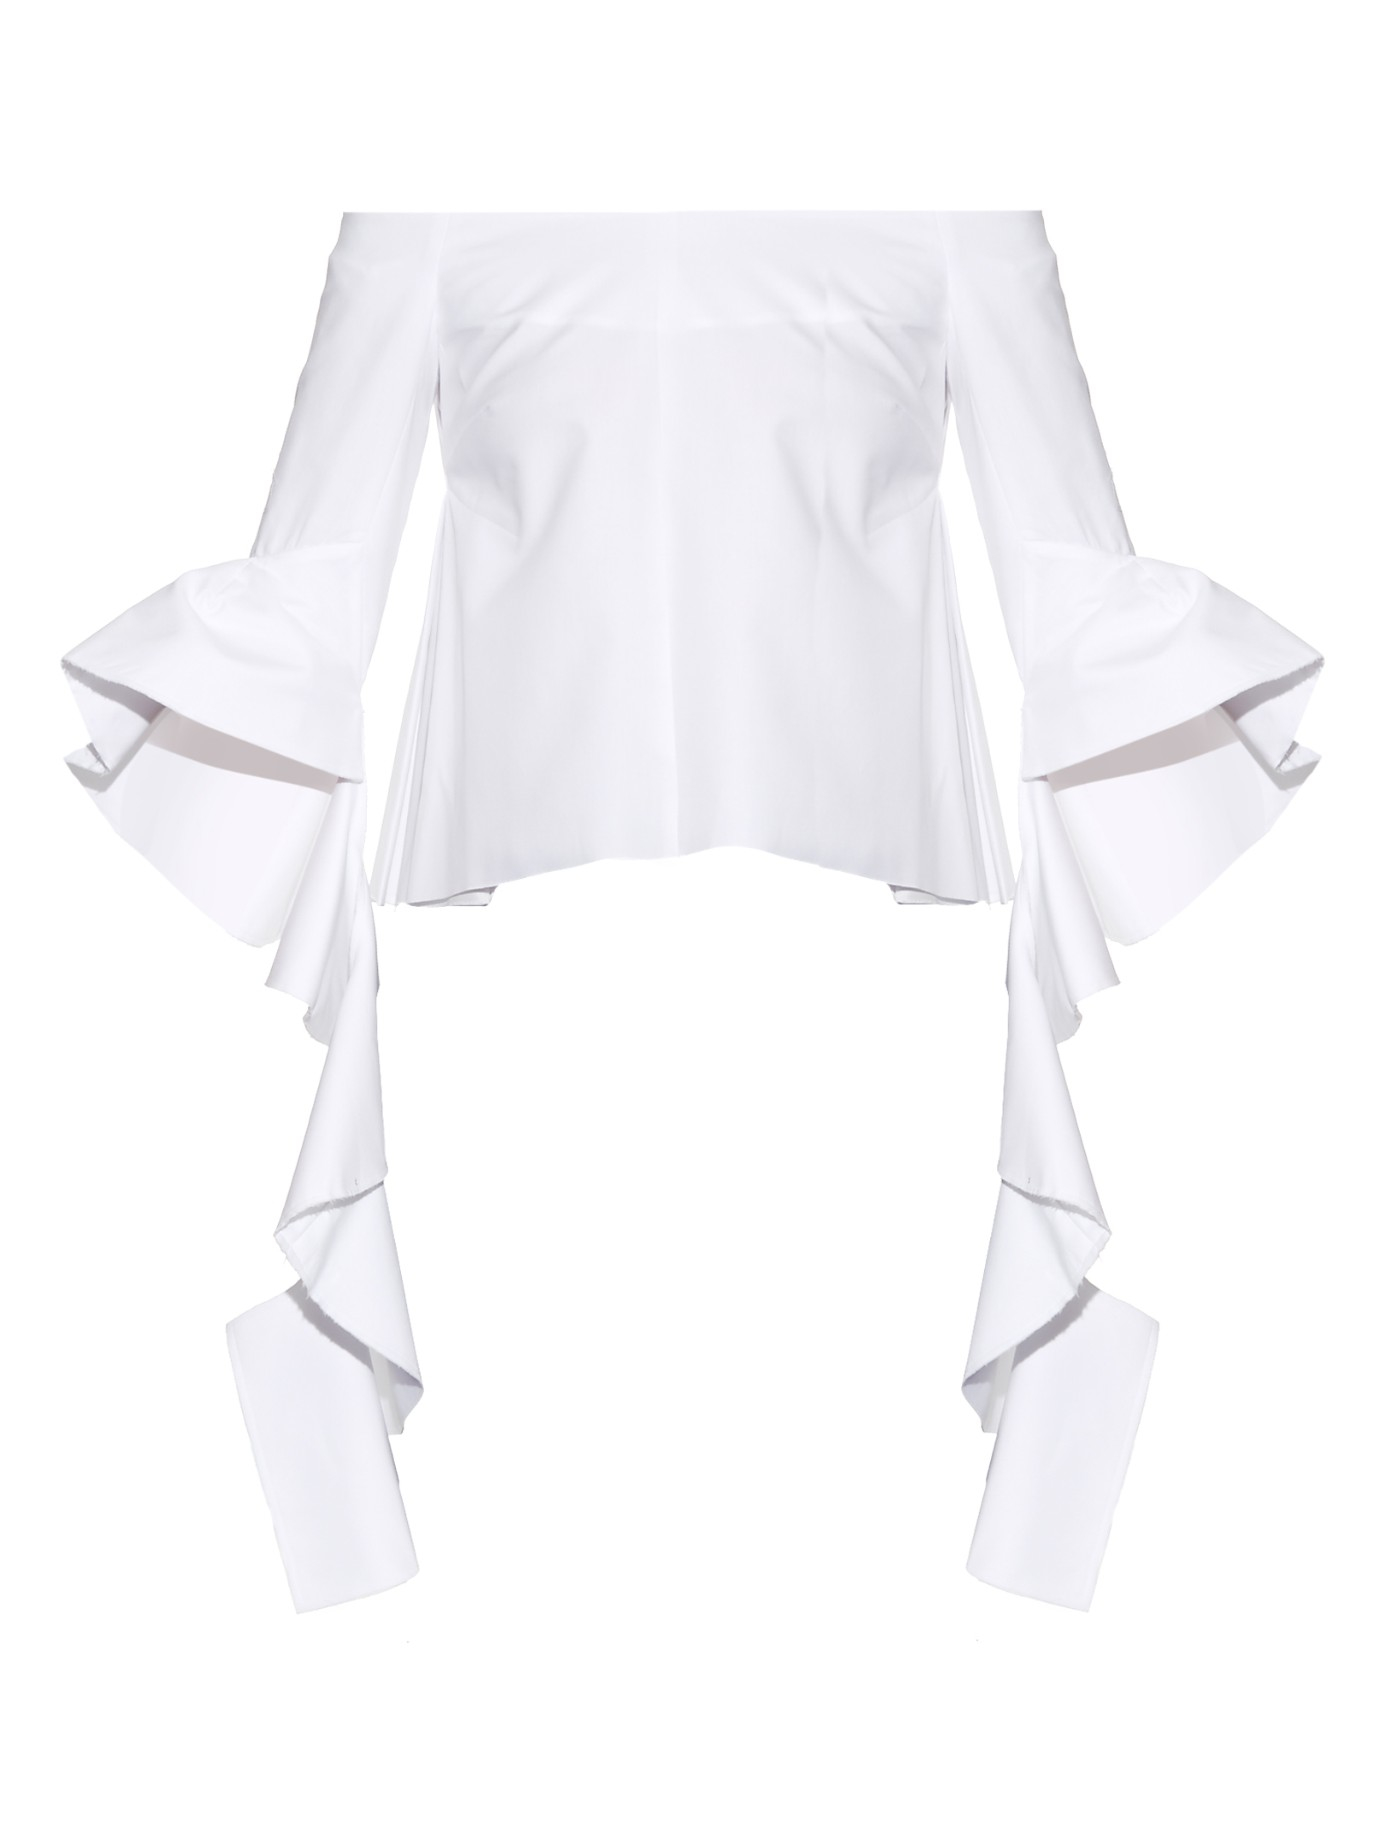 07f0c98c11927 Lyst - Ellery Delores Off-the-shoulder Top in White